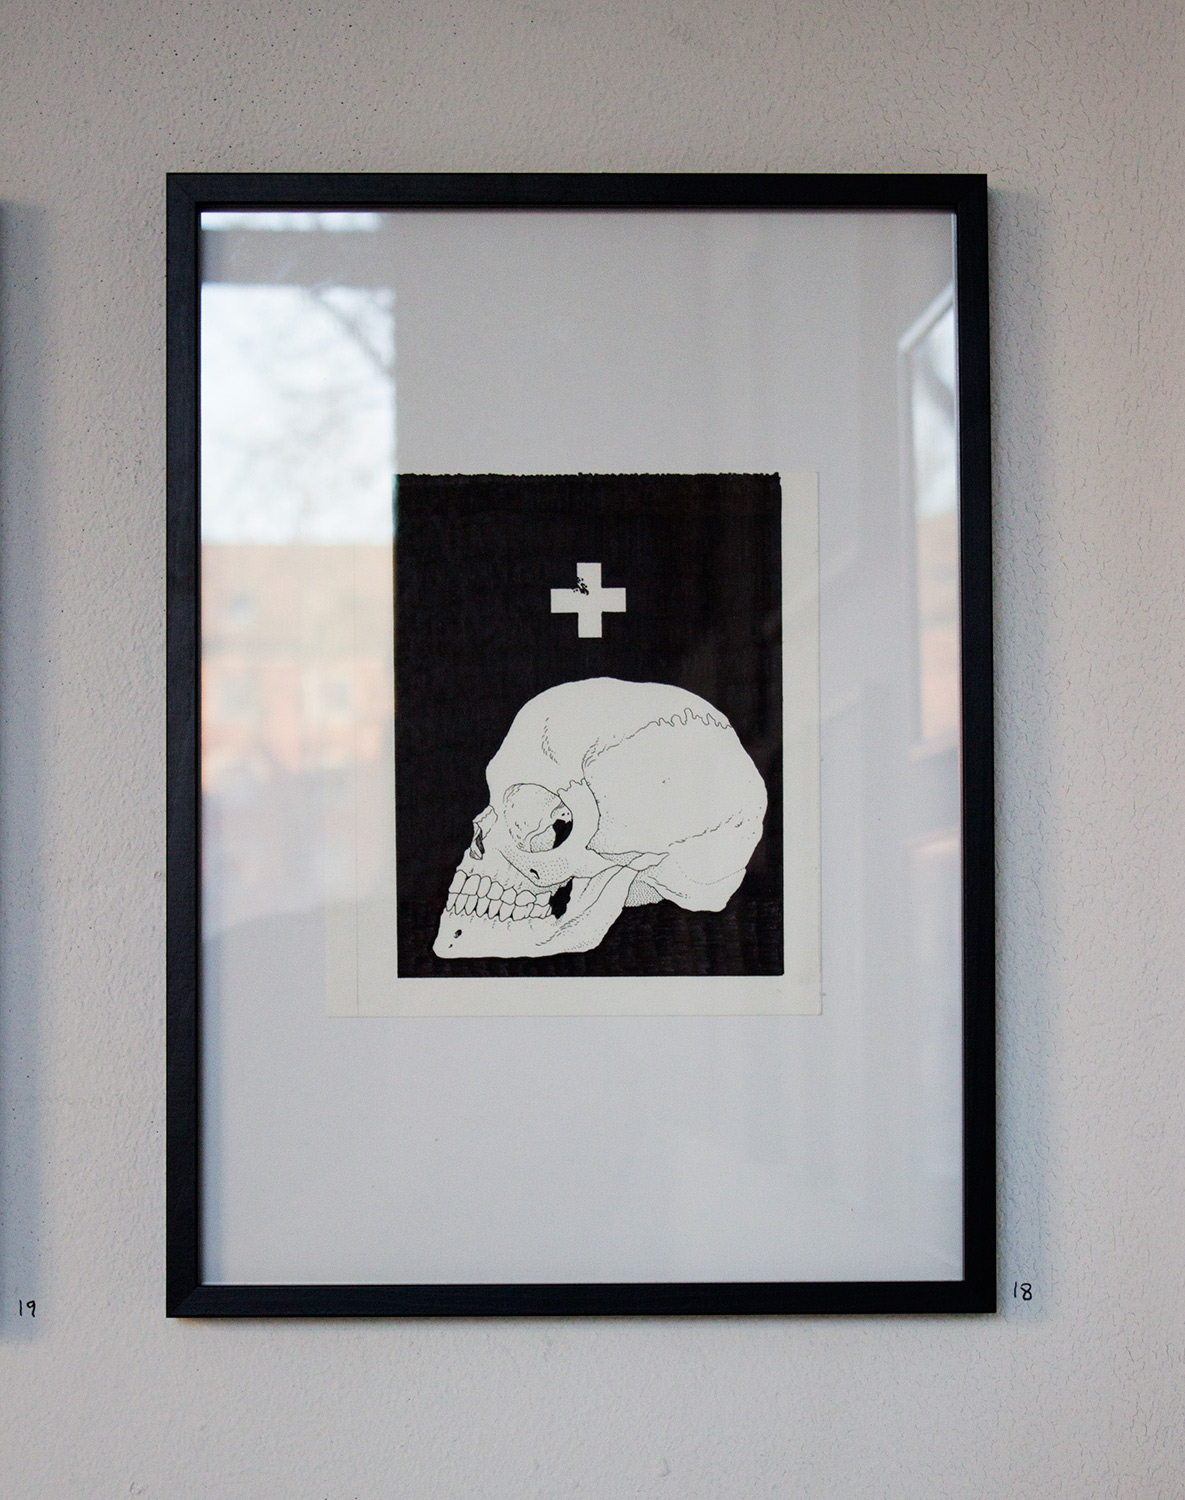 drawings, figurative, graphical, monochrome, bodies, people, black, white, artliner, paper, black-and-white, contemporary-art, danish, death, design, faces, interior, interior-design, modern, modern-art, nordic, scandinavien, Buy original high quality art. Paintings, drawings, limited edition prints & posters by talented artists.